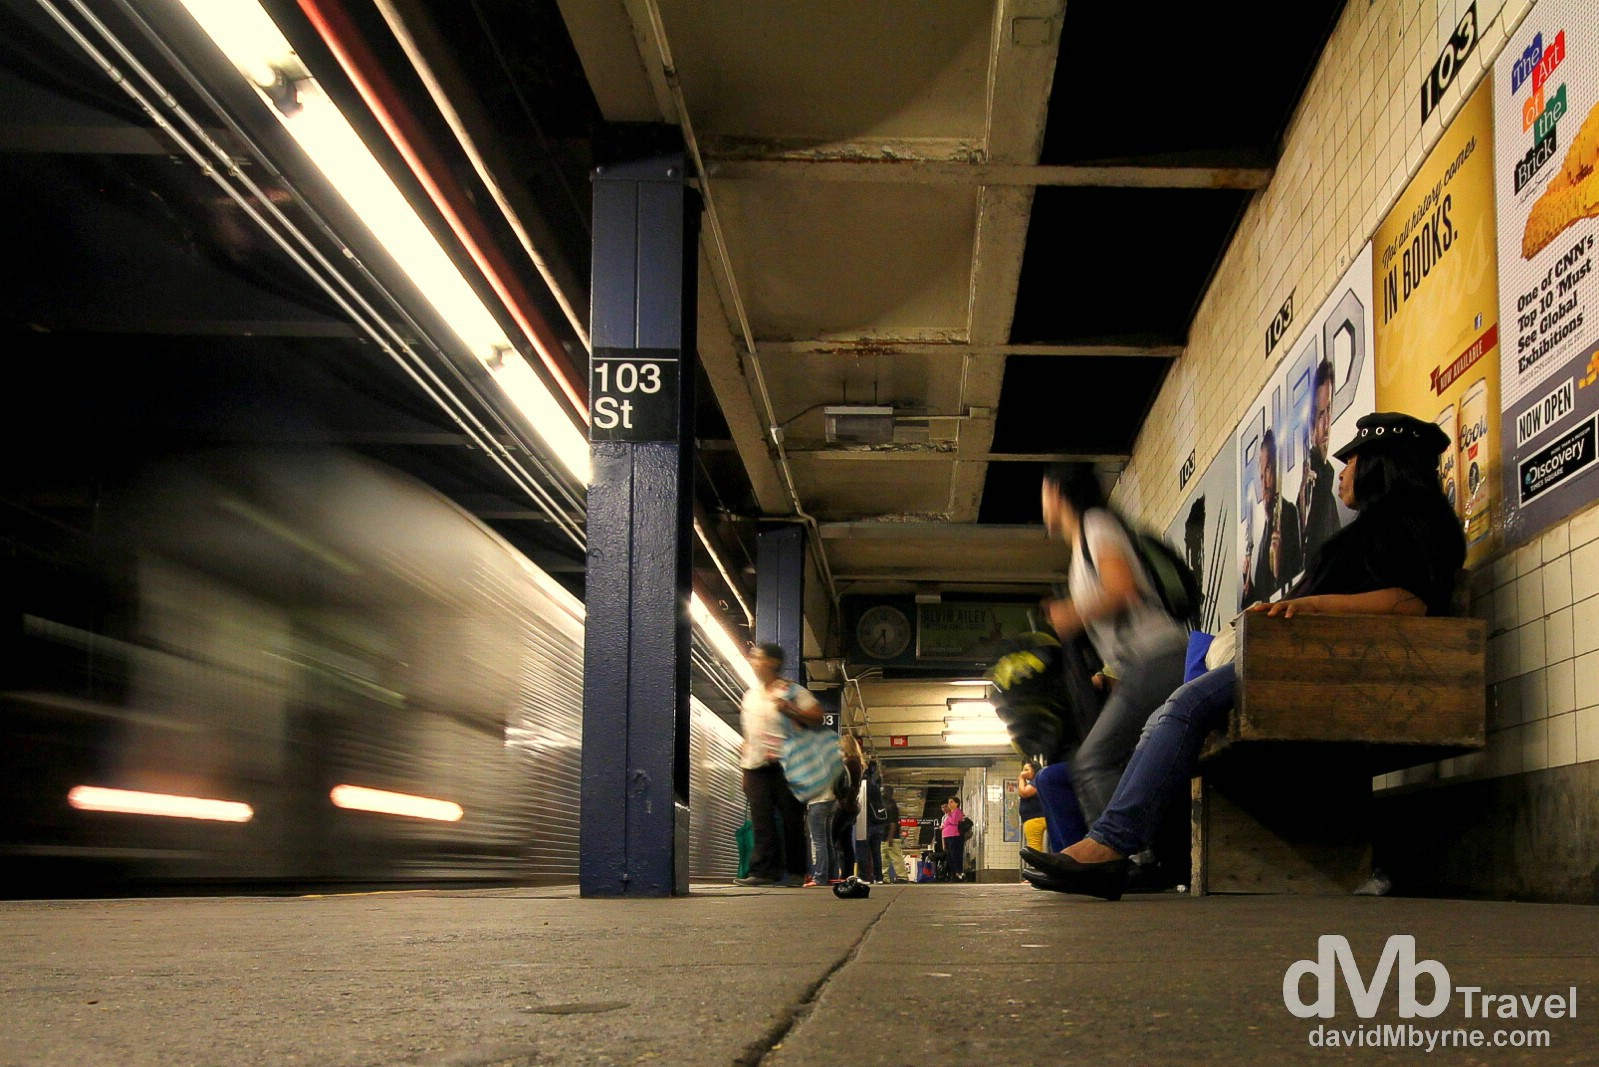 A subway car rolls into 103 Street subway station, Manhattan, New York. July 12th 2013.